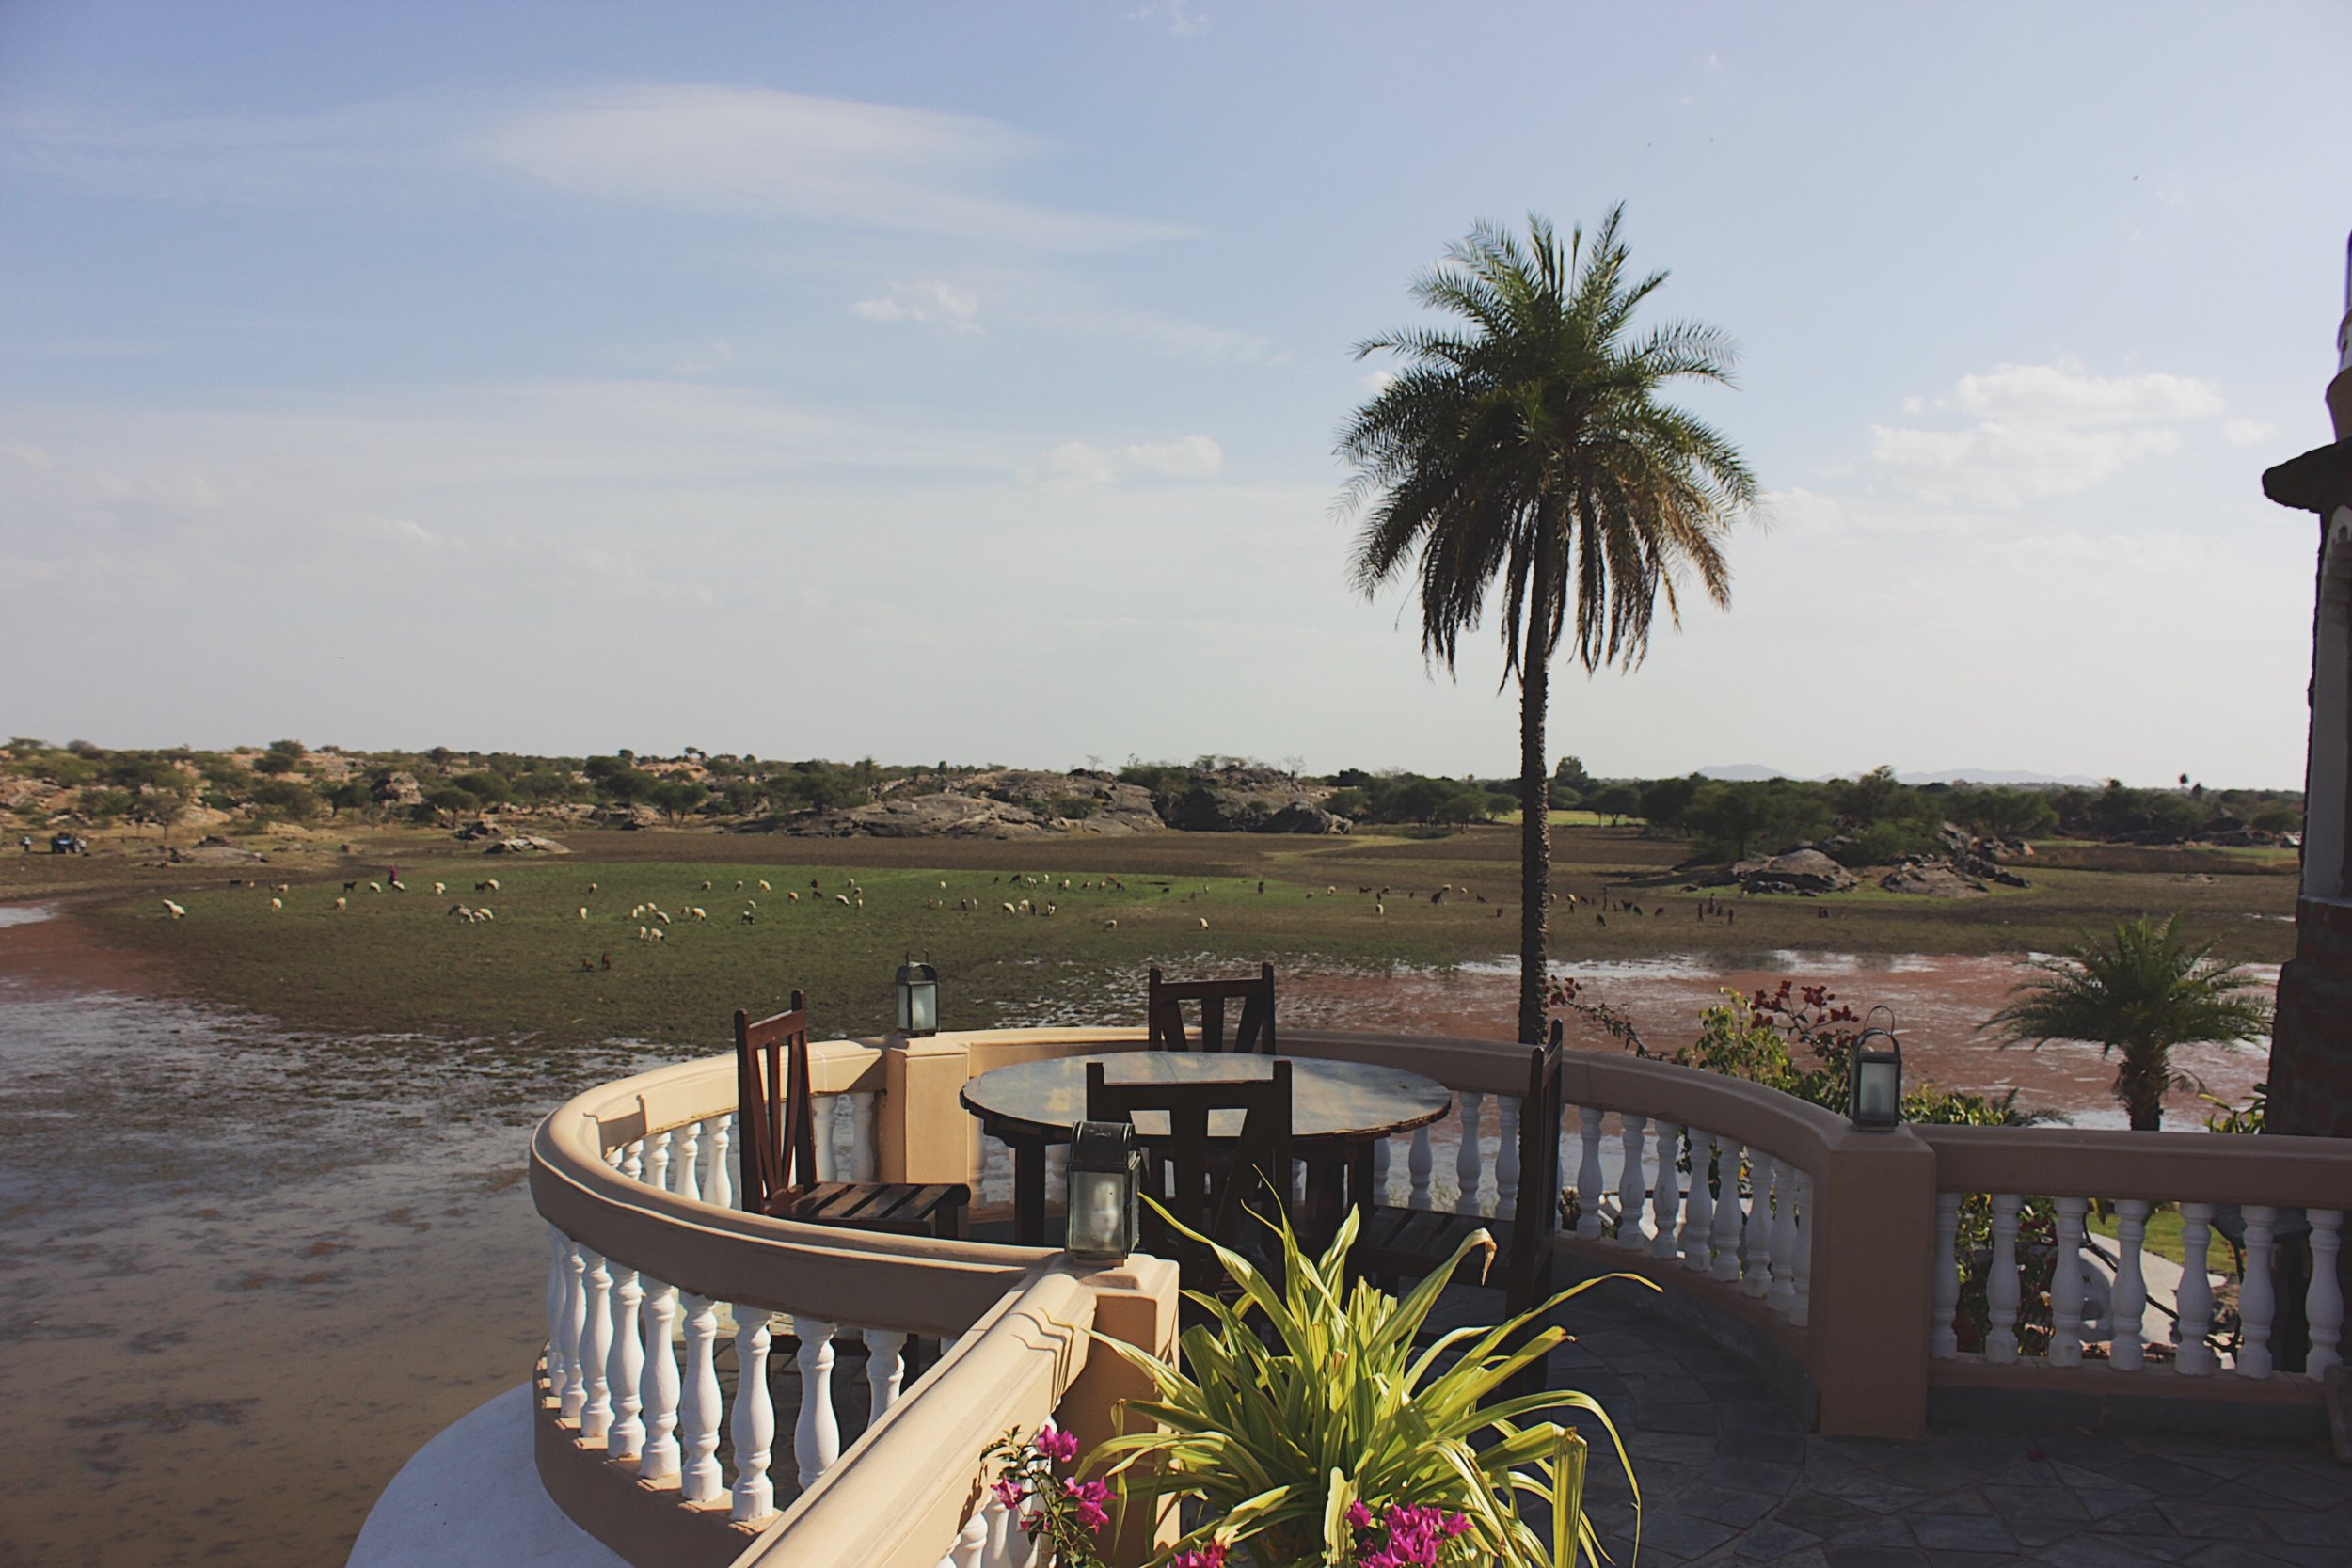 Seengh Sagar; now overlooking a parched lake.As you gaze far into the vast horizon, you'd soon realize what a peach of a spot the royalty picked to be their hunting retreat.